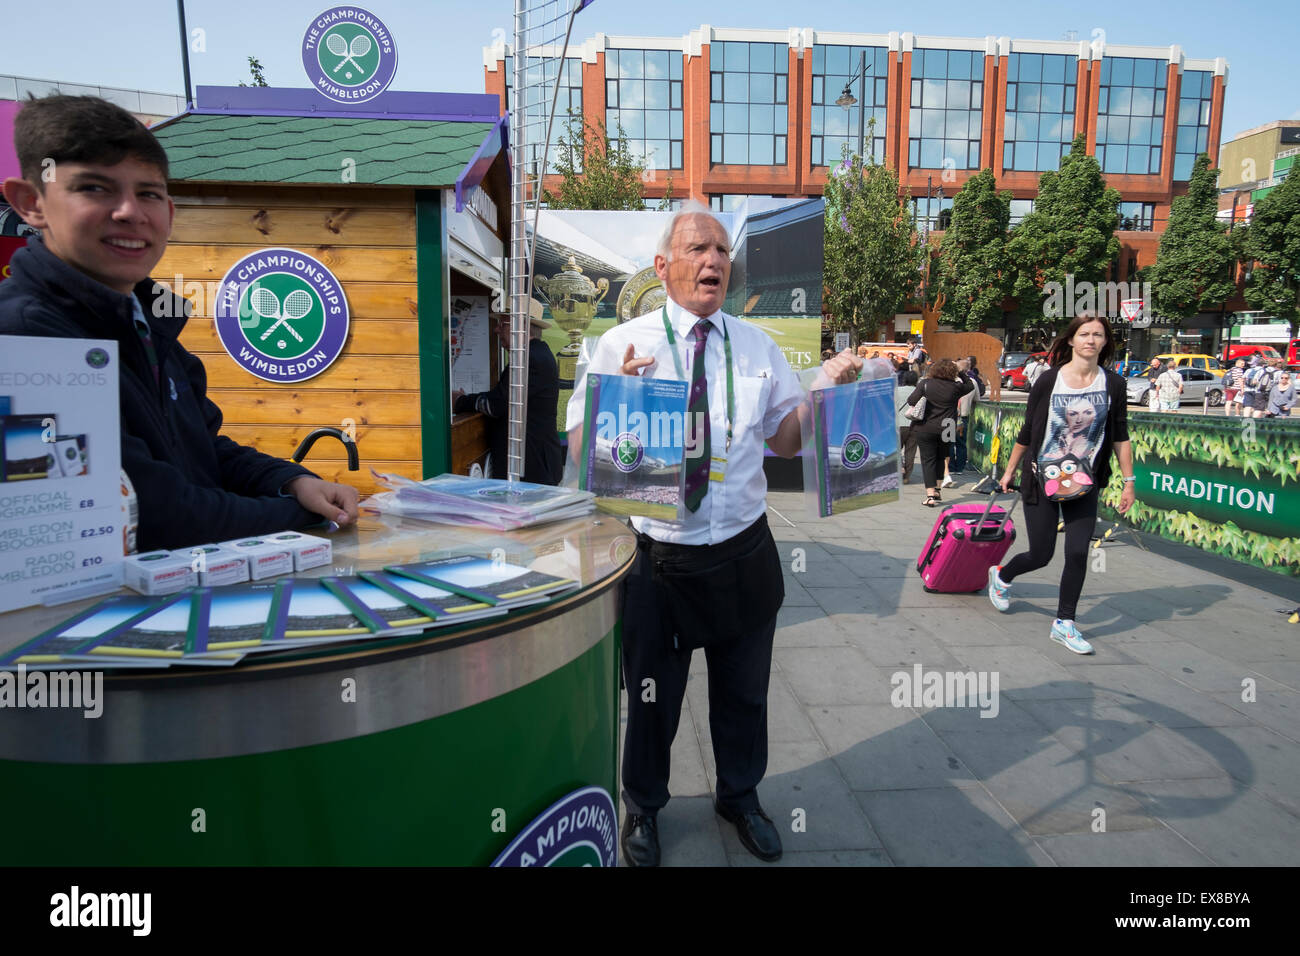 Wimbledon, London UK. 9th July 2015. Business as usual selling Tennis Programmes at Wimbledon in spite of the tube - Stock Image